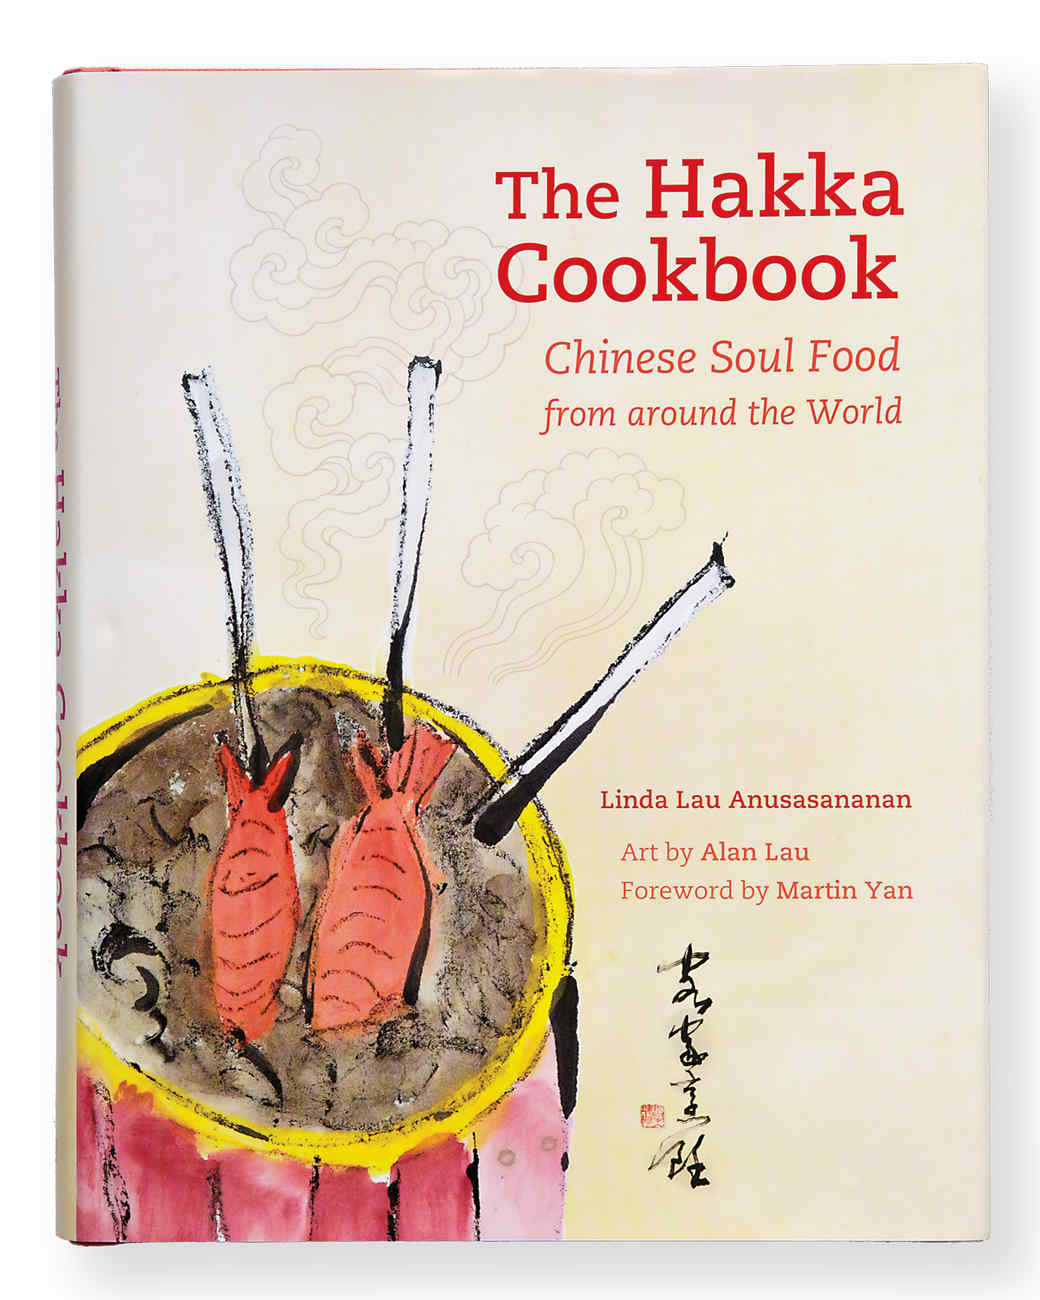 the-hakka-cookbook-061-mld109433.jpg